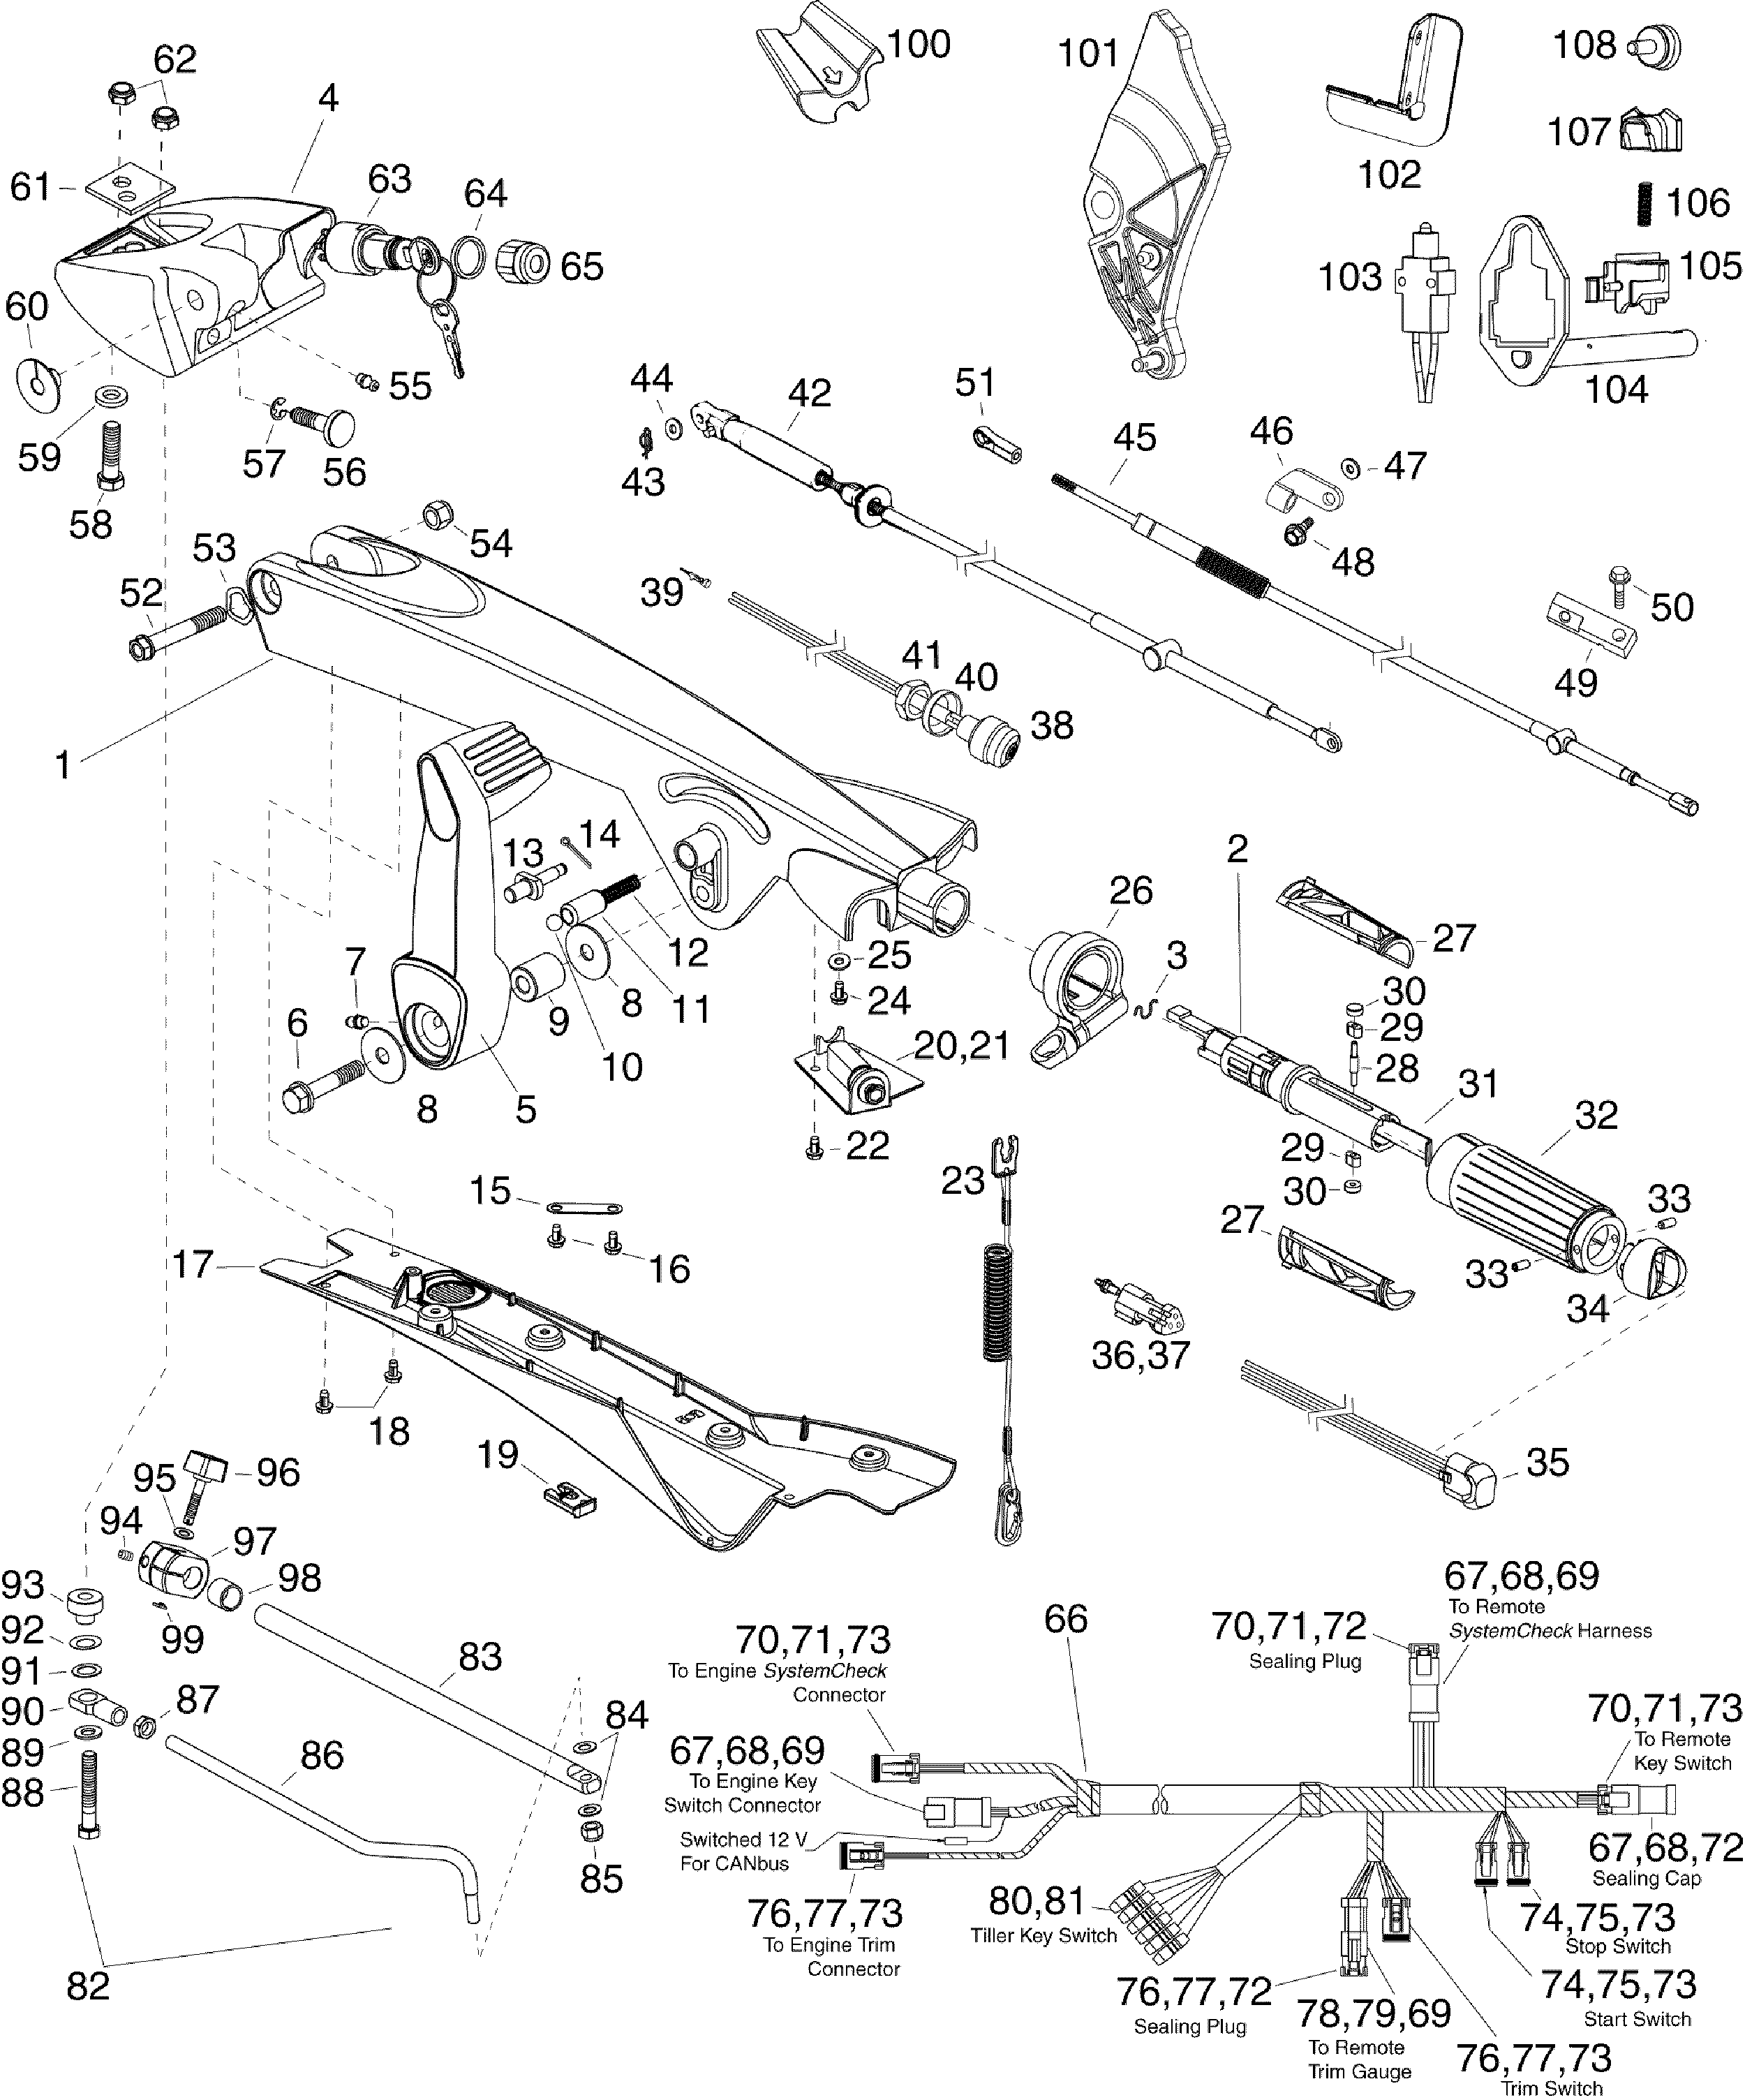 Nissan 240sx Ka24e Diagram